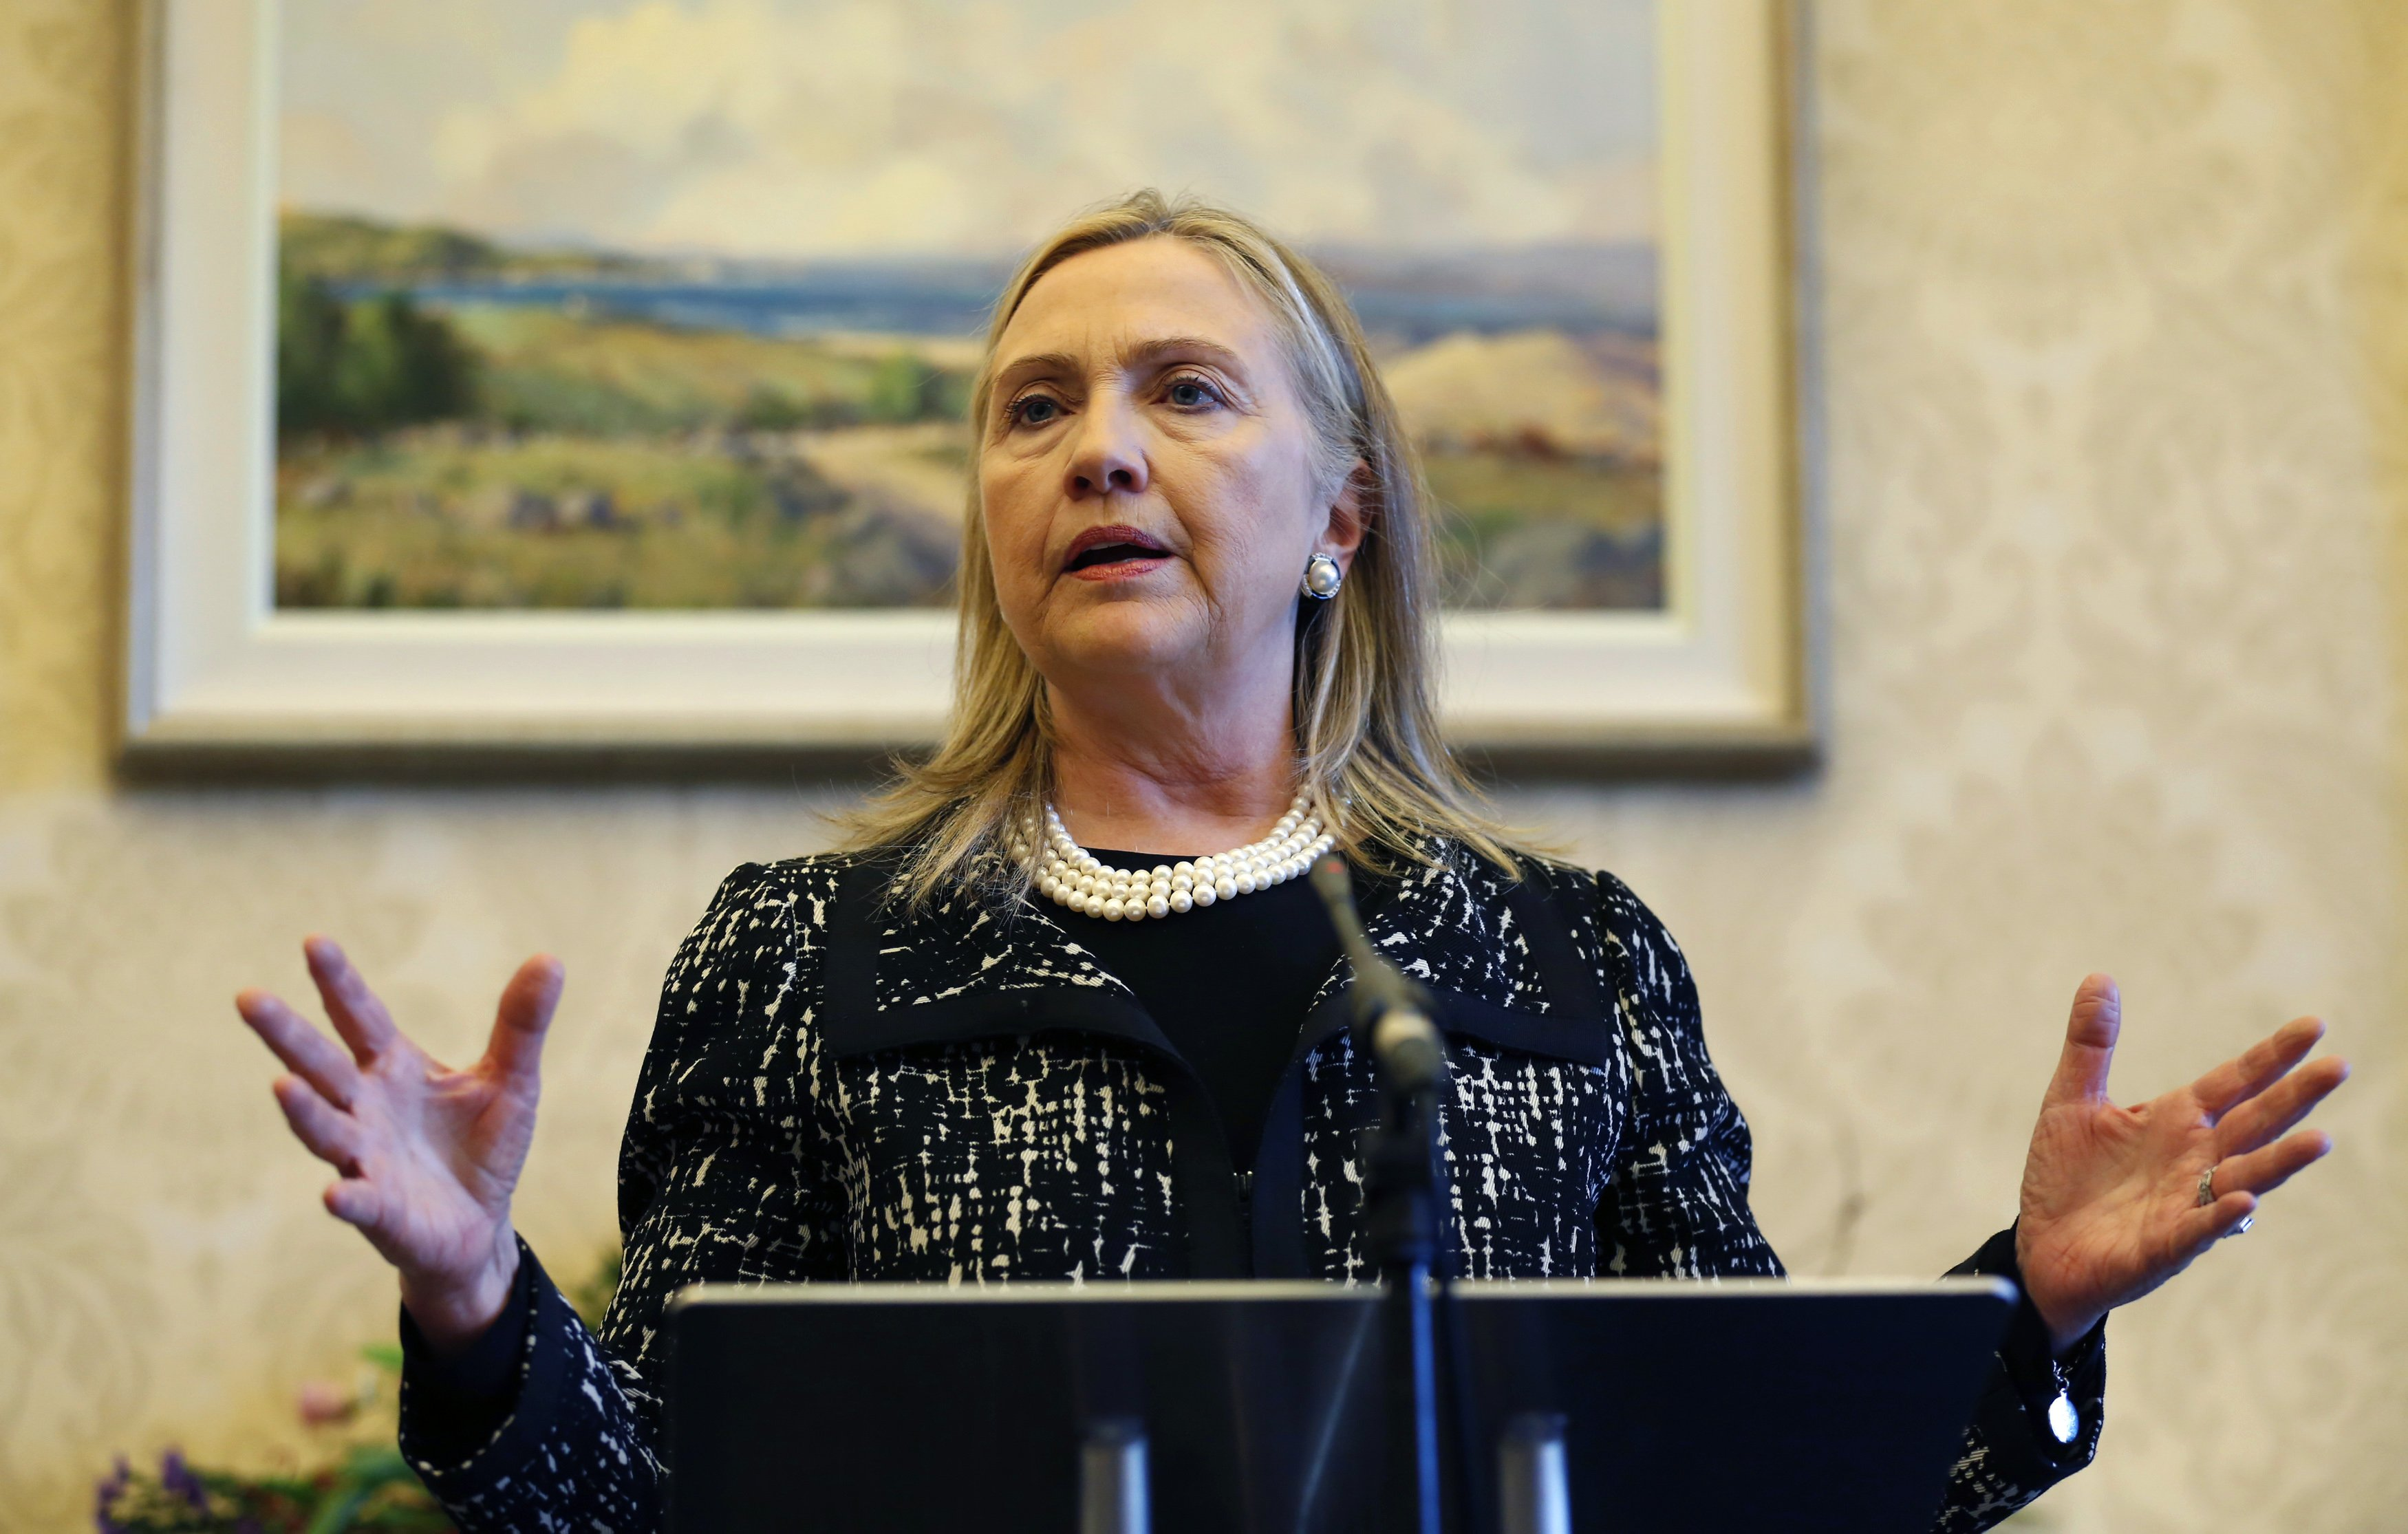 Secretary of State Hillary Clinton speaks during a news conference at Stormont Castle in Belfast December 7, 2012. (Kevin Lamarque/Reuters)